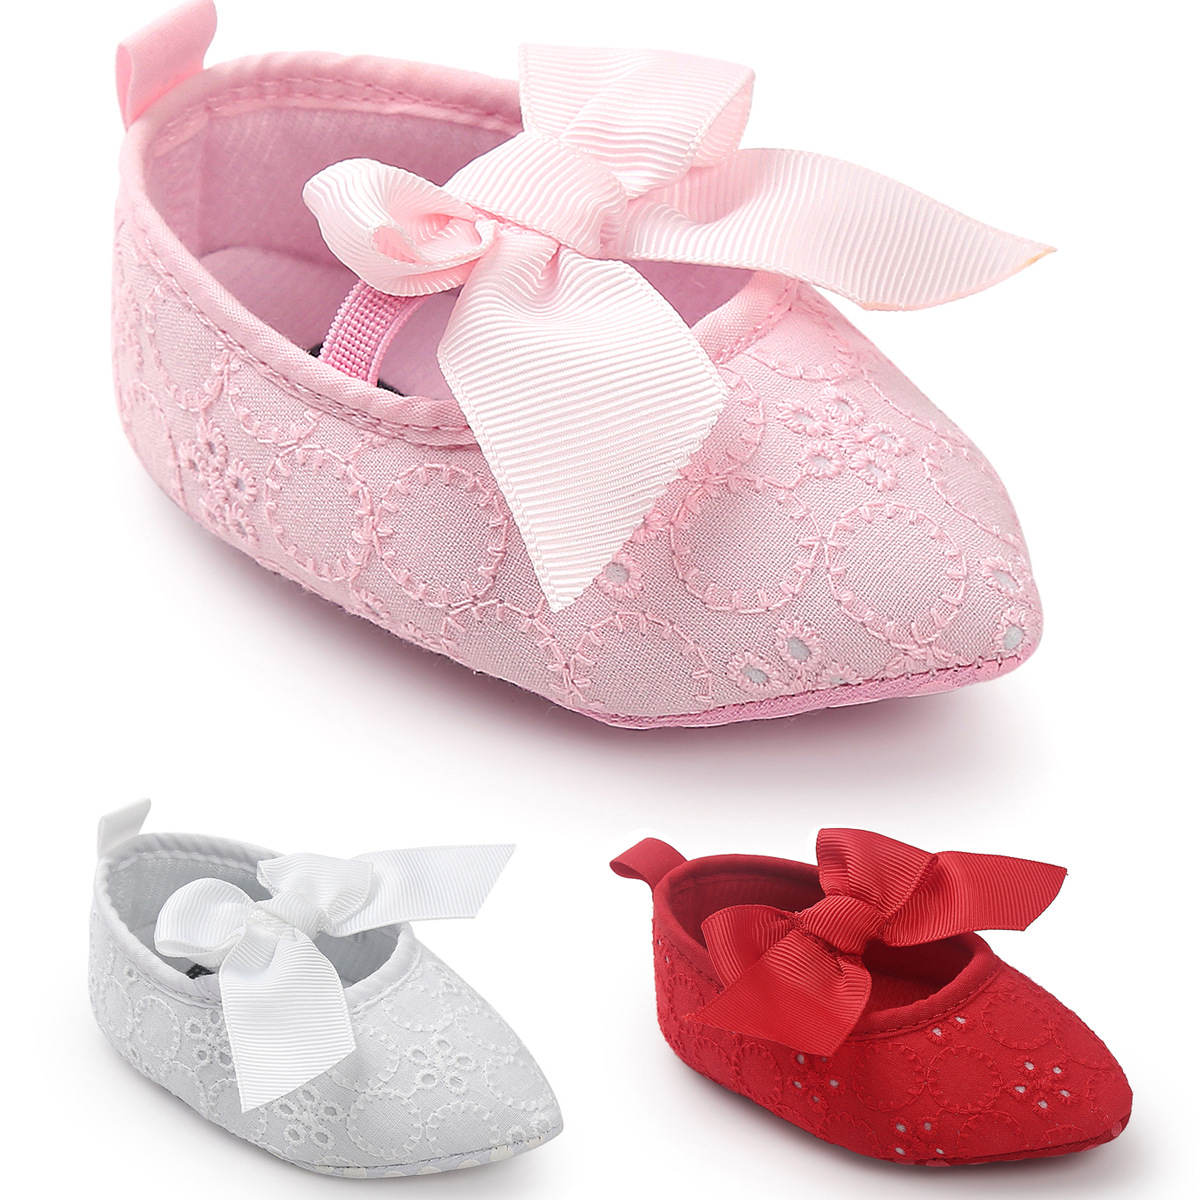 Fashion Lace Bows Princess Shoes Print Bow Girl Baby Shoes Toddler Shoes Soft Non-slip Newborn Shoes First Walker